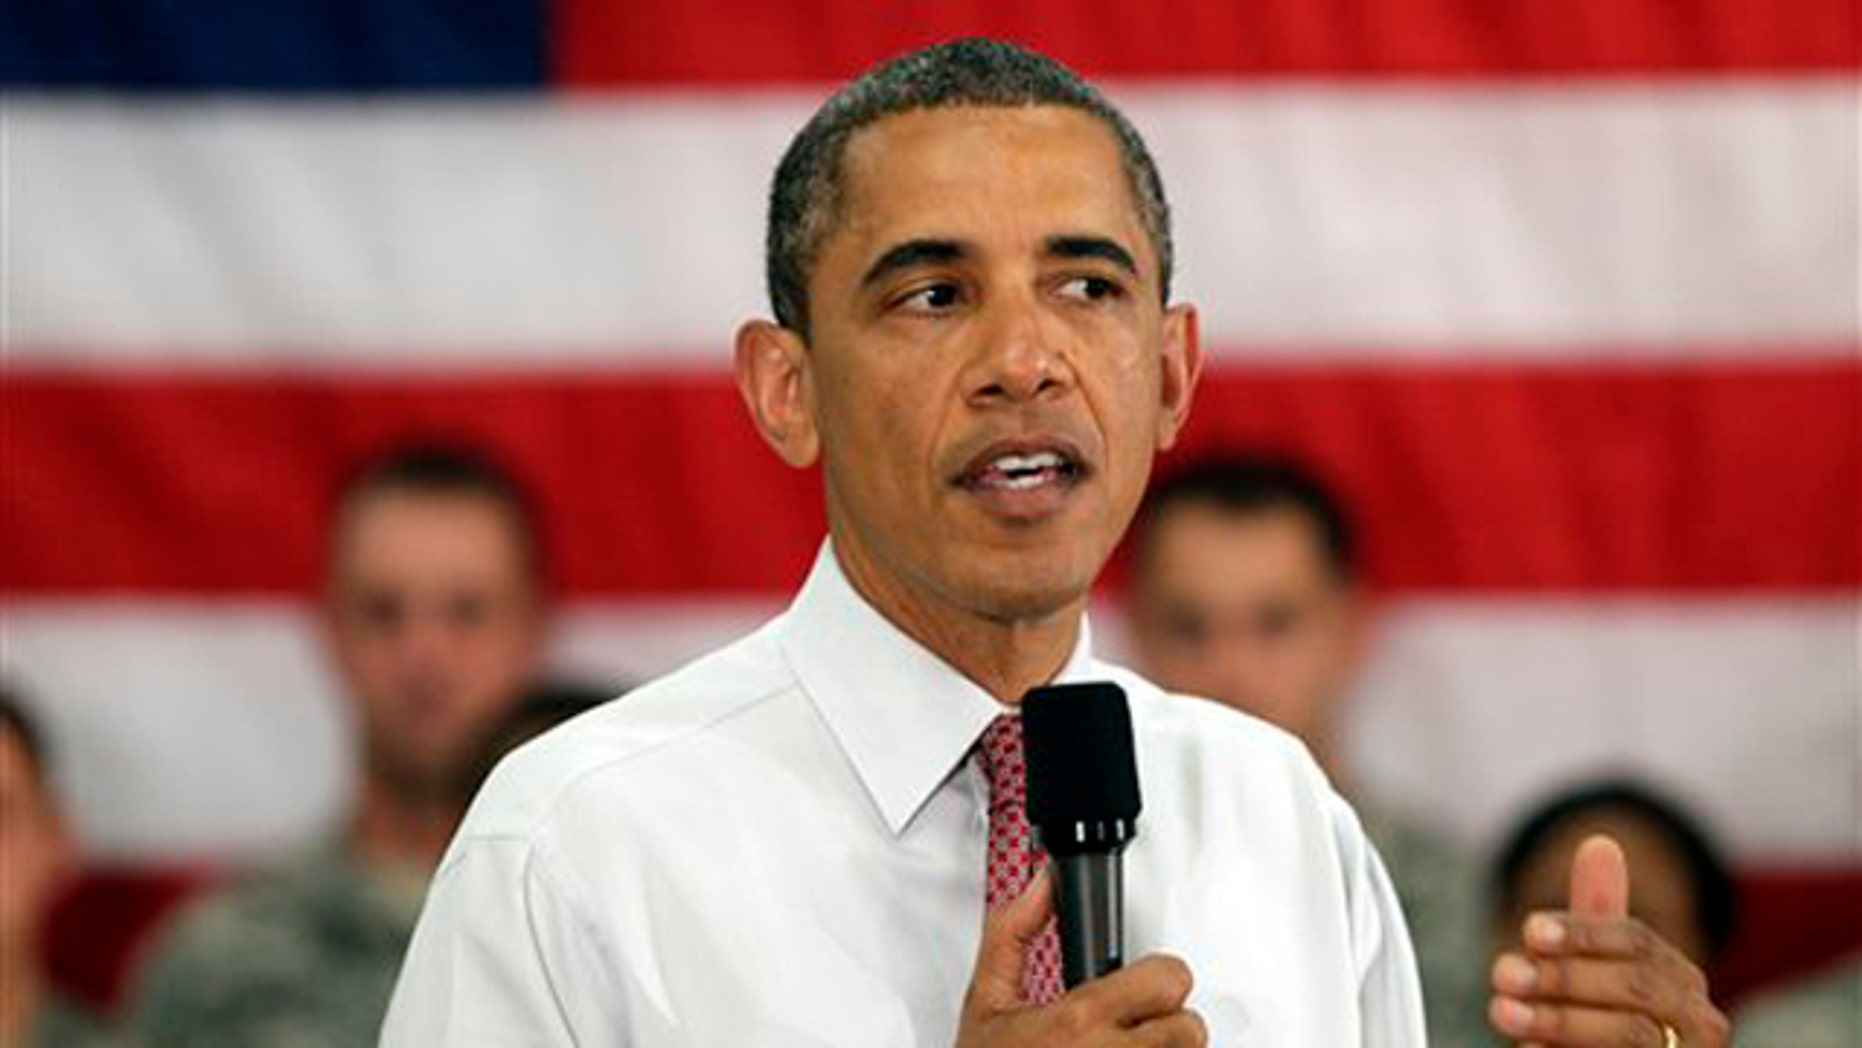 President Obama speaks to soldiers from the 10th Mountain Division June 23 in Fort Drum, N.Y.